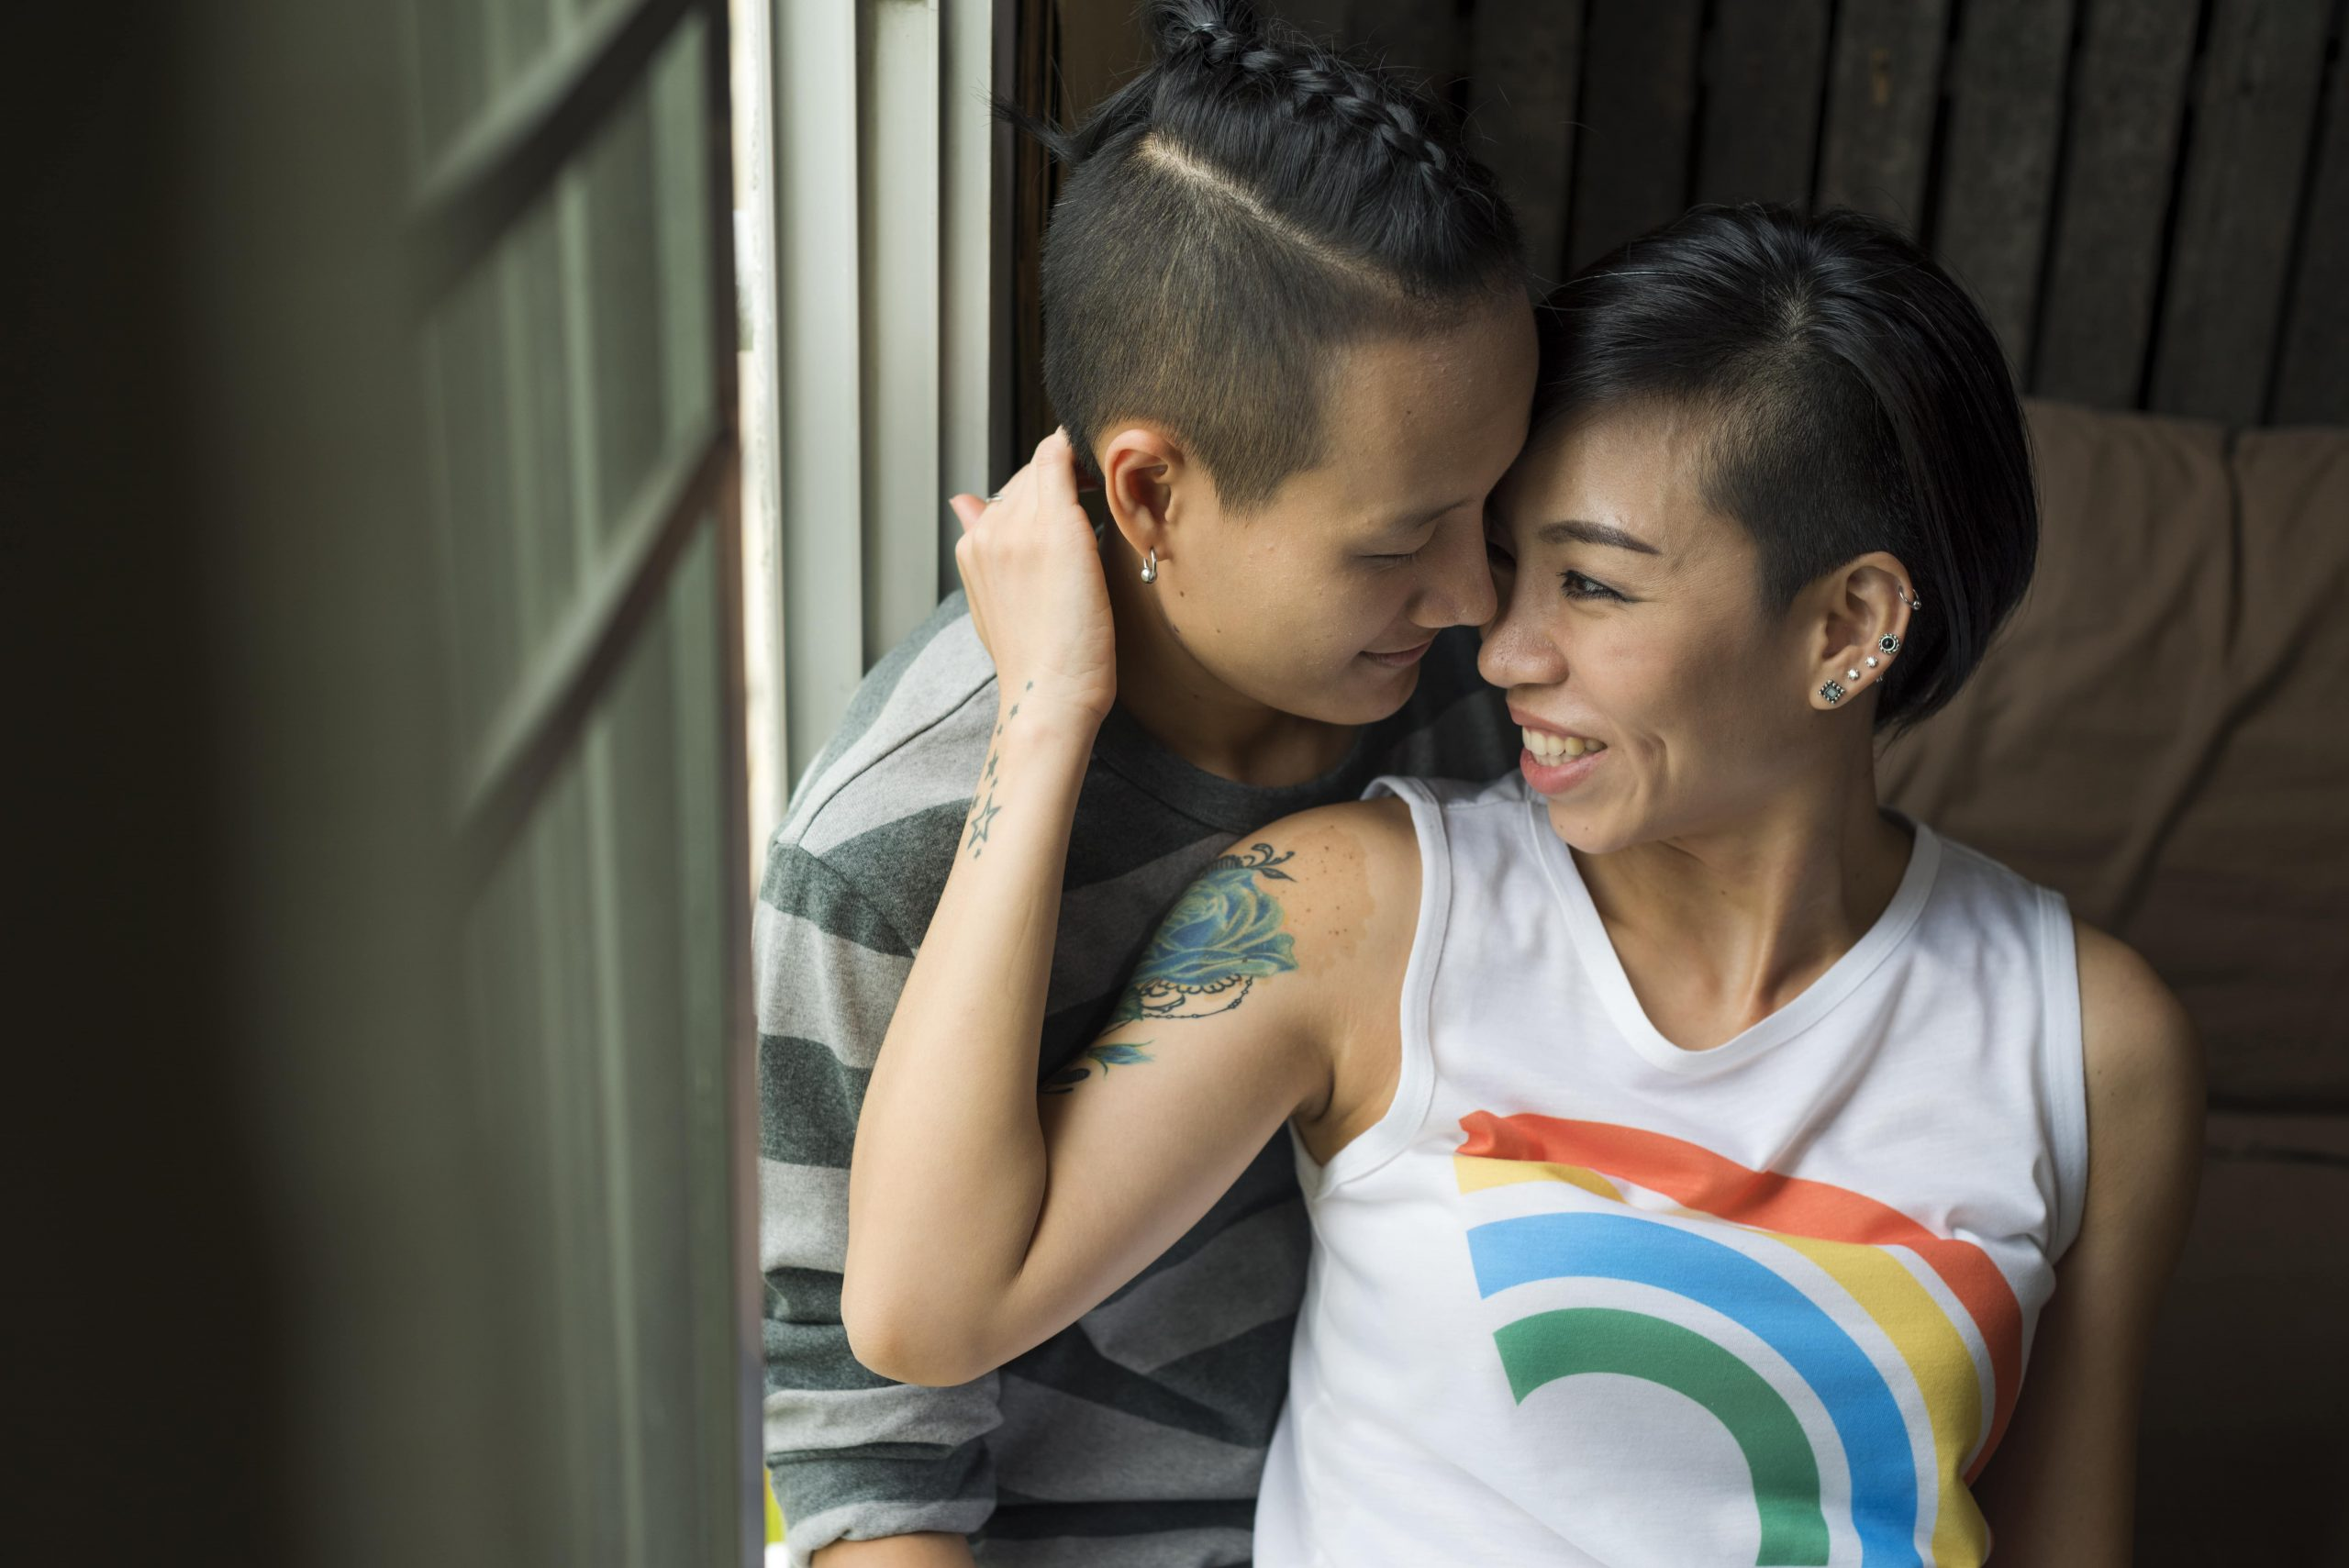 LGBT couple ready to build a family